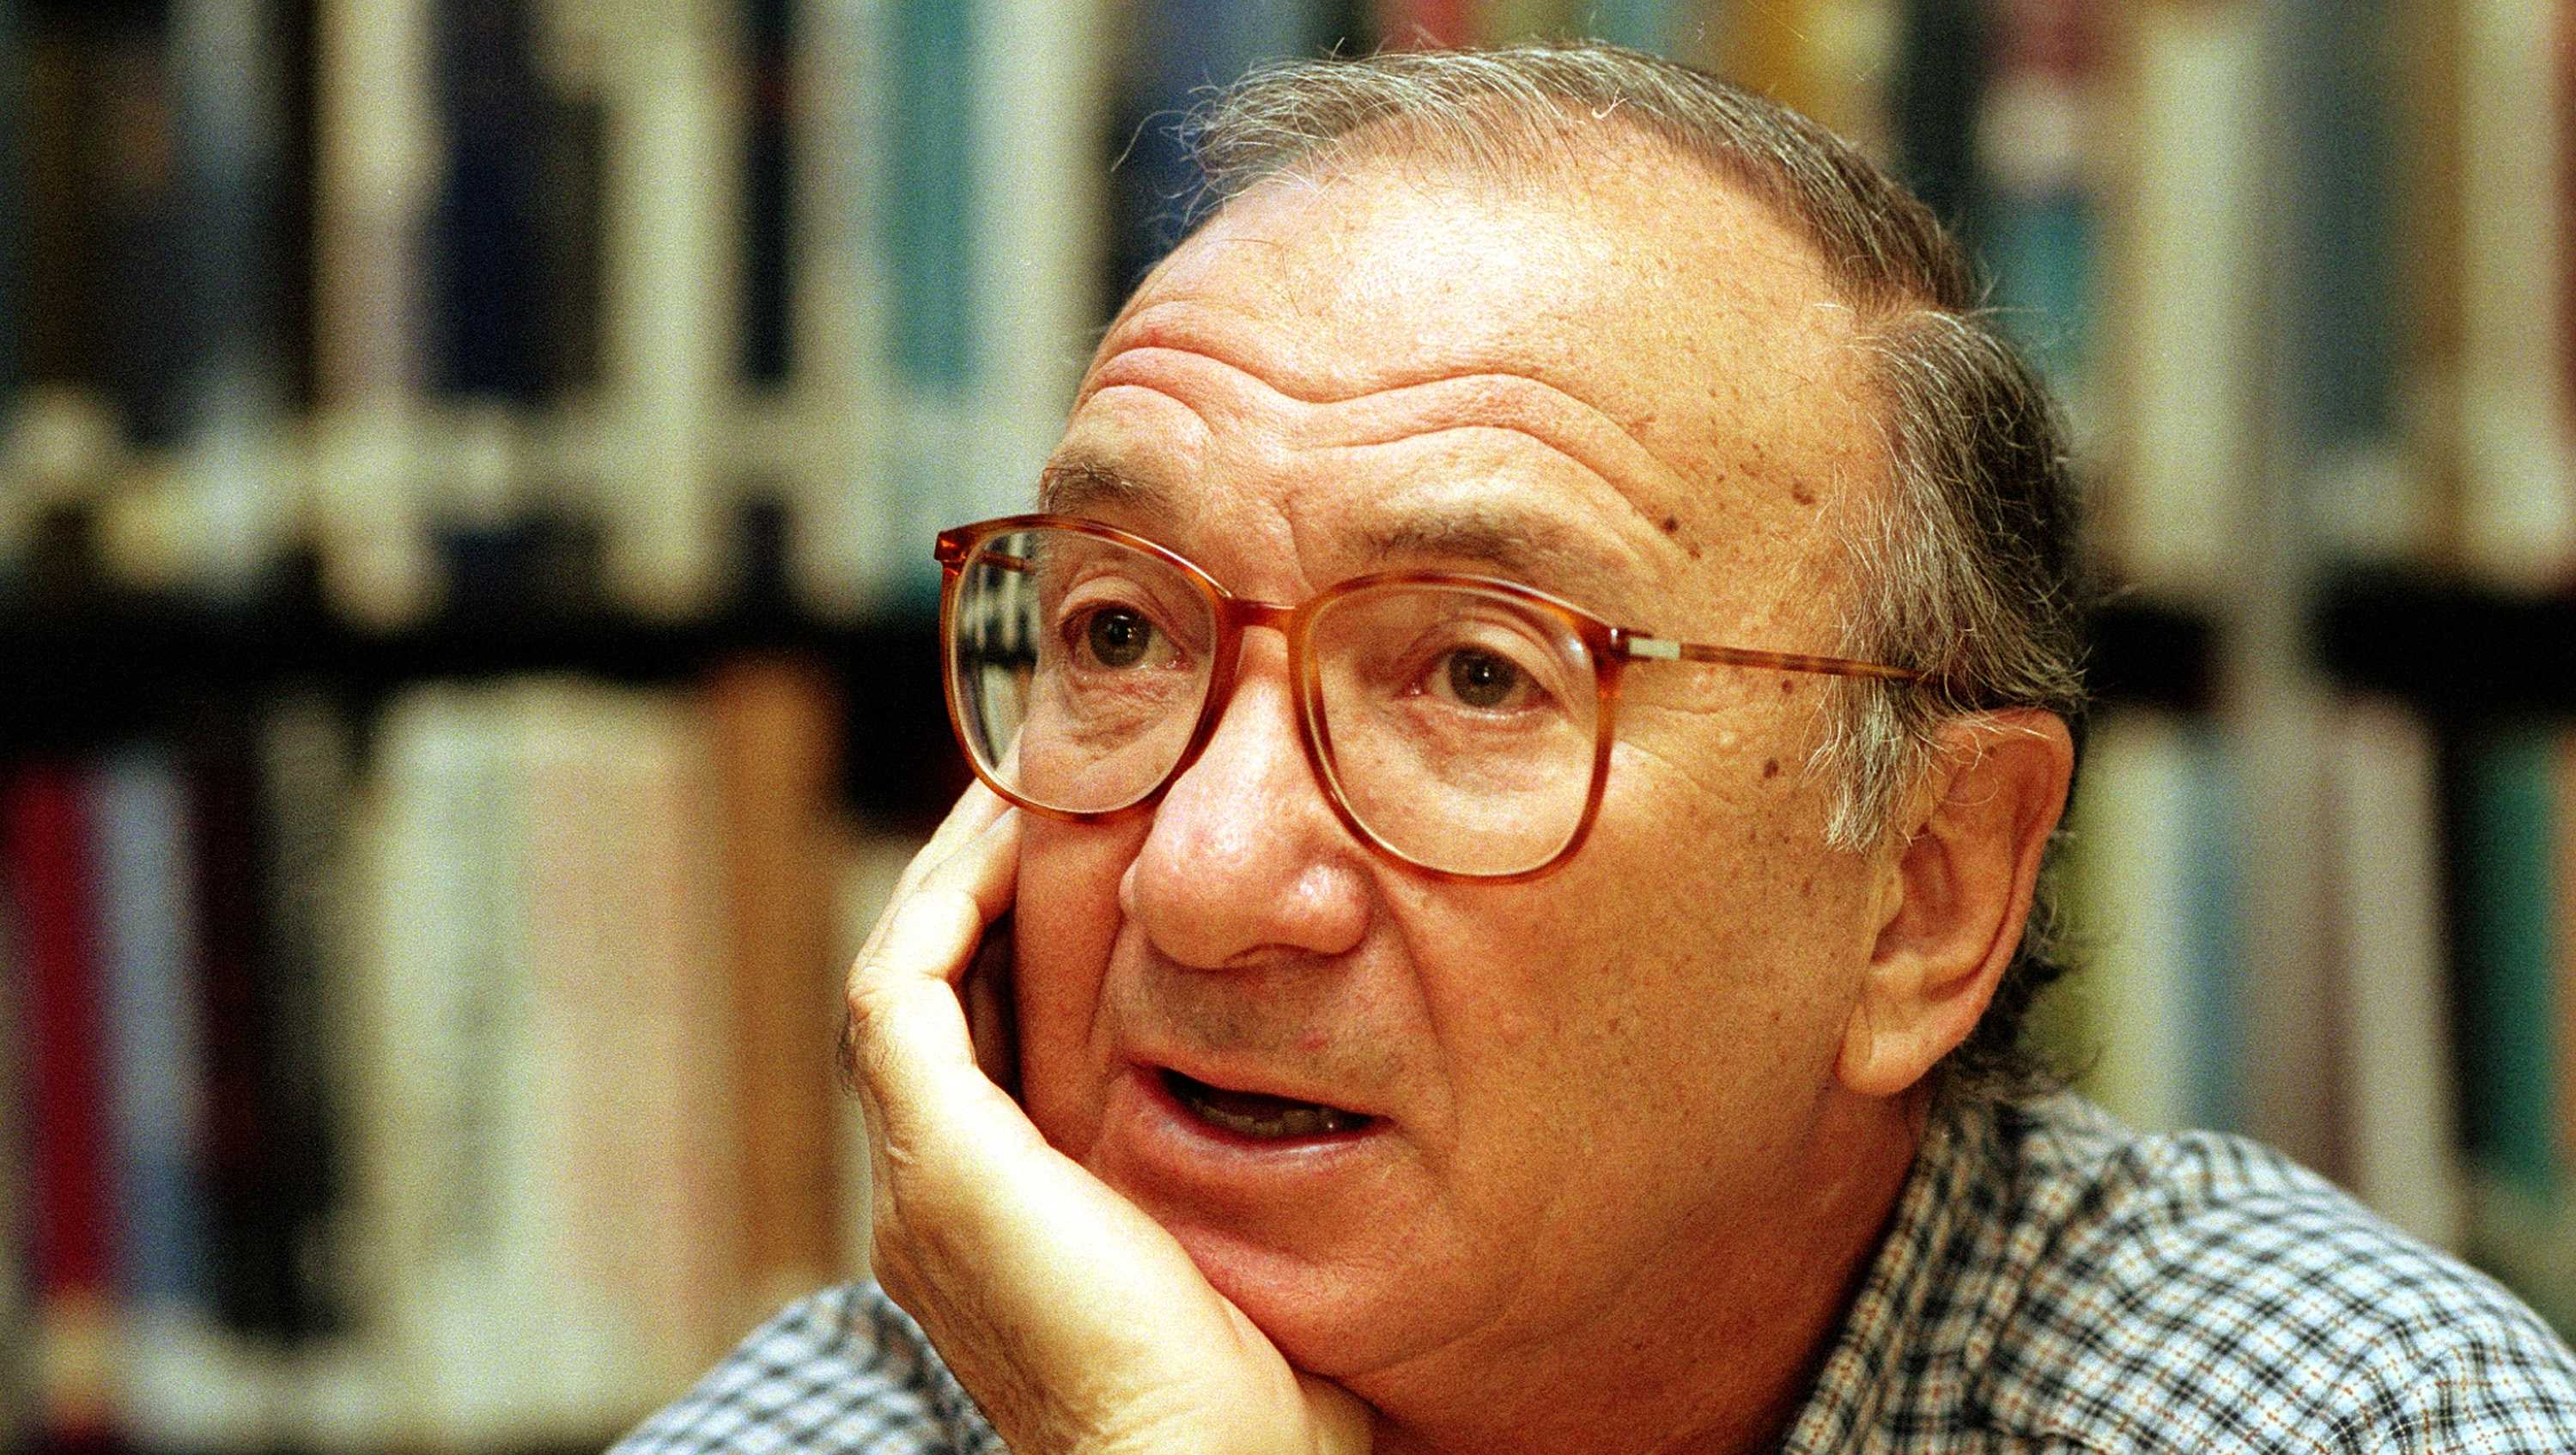 The Odd Couple Playwright Neil Simon Dies At 91 by WMUR9